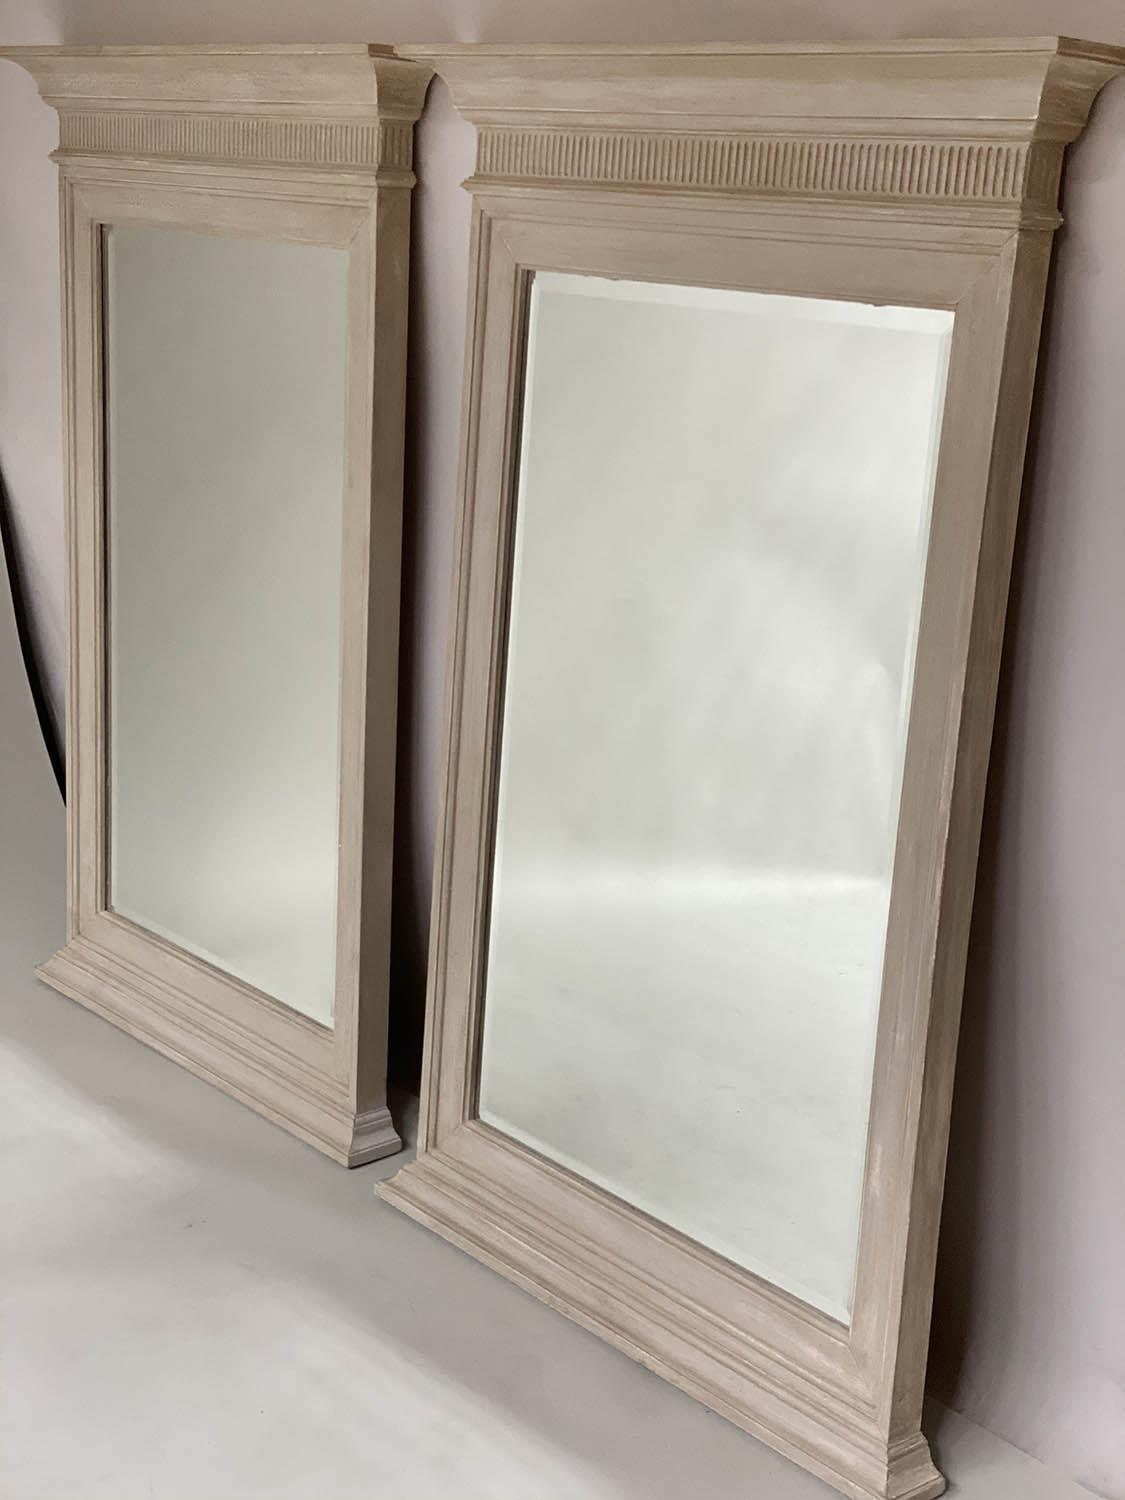 PIER MIRRORS, a pair, Regency style grey painted each with cornice, fluted frieze and bevelled